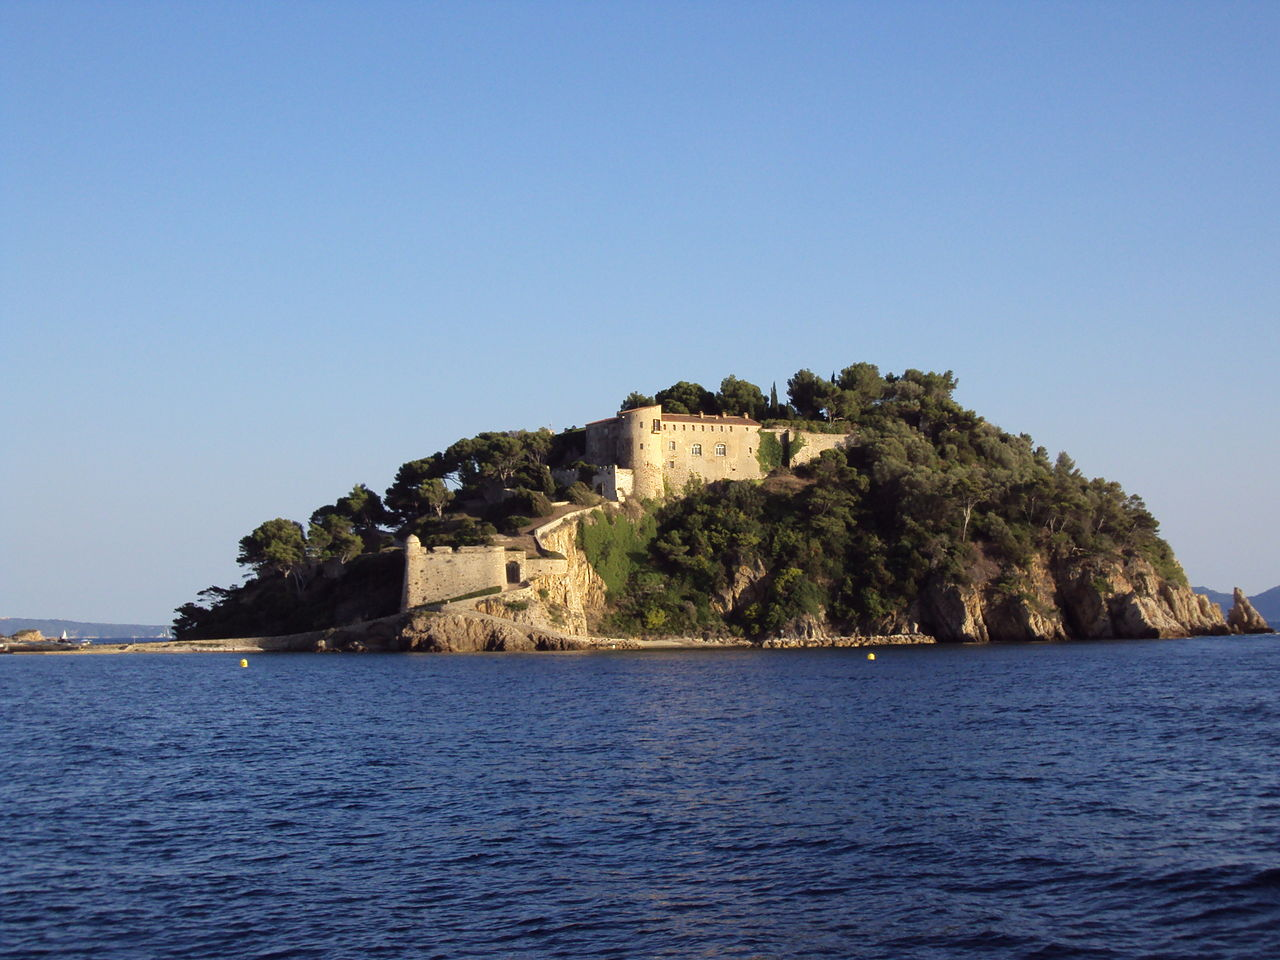 Fort de Brégançon By Patrub01 CC BY-SA 3.0 via Wikimedia Commons